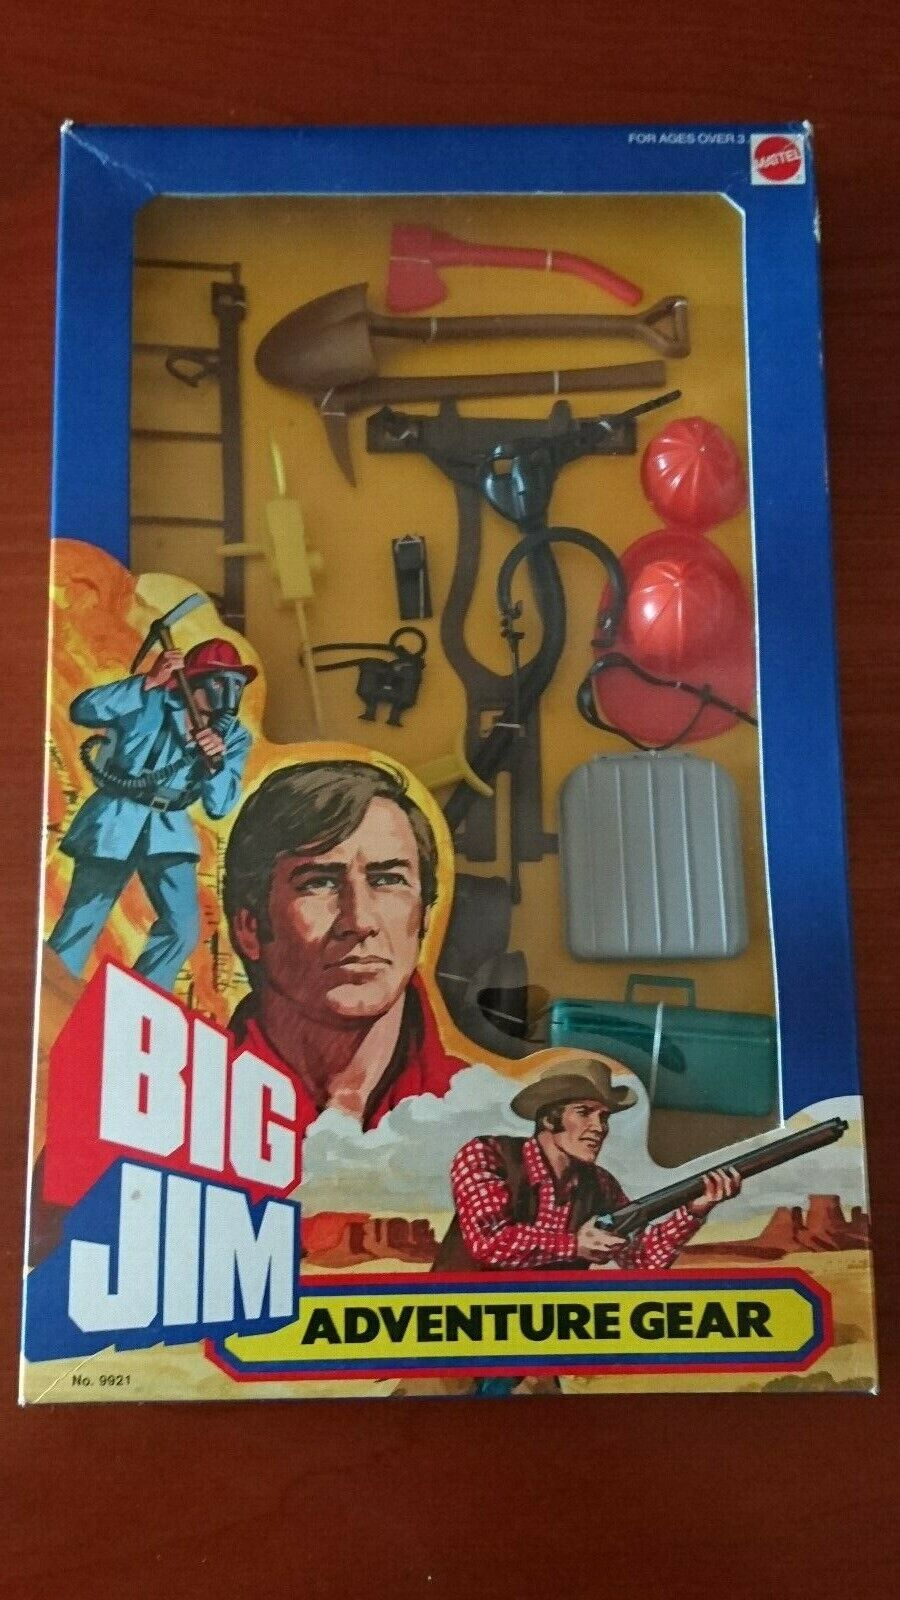 BIG JIM MATTEL ACTION SET    OUTFIT   9921   ADVENTURE GEAR FIRE RESCUE   BOXED  pas de minimum